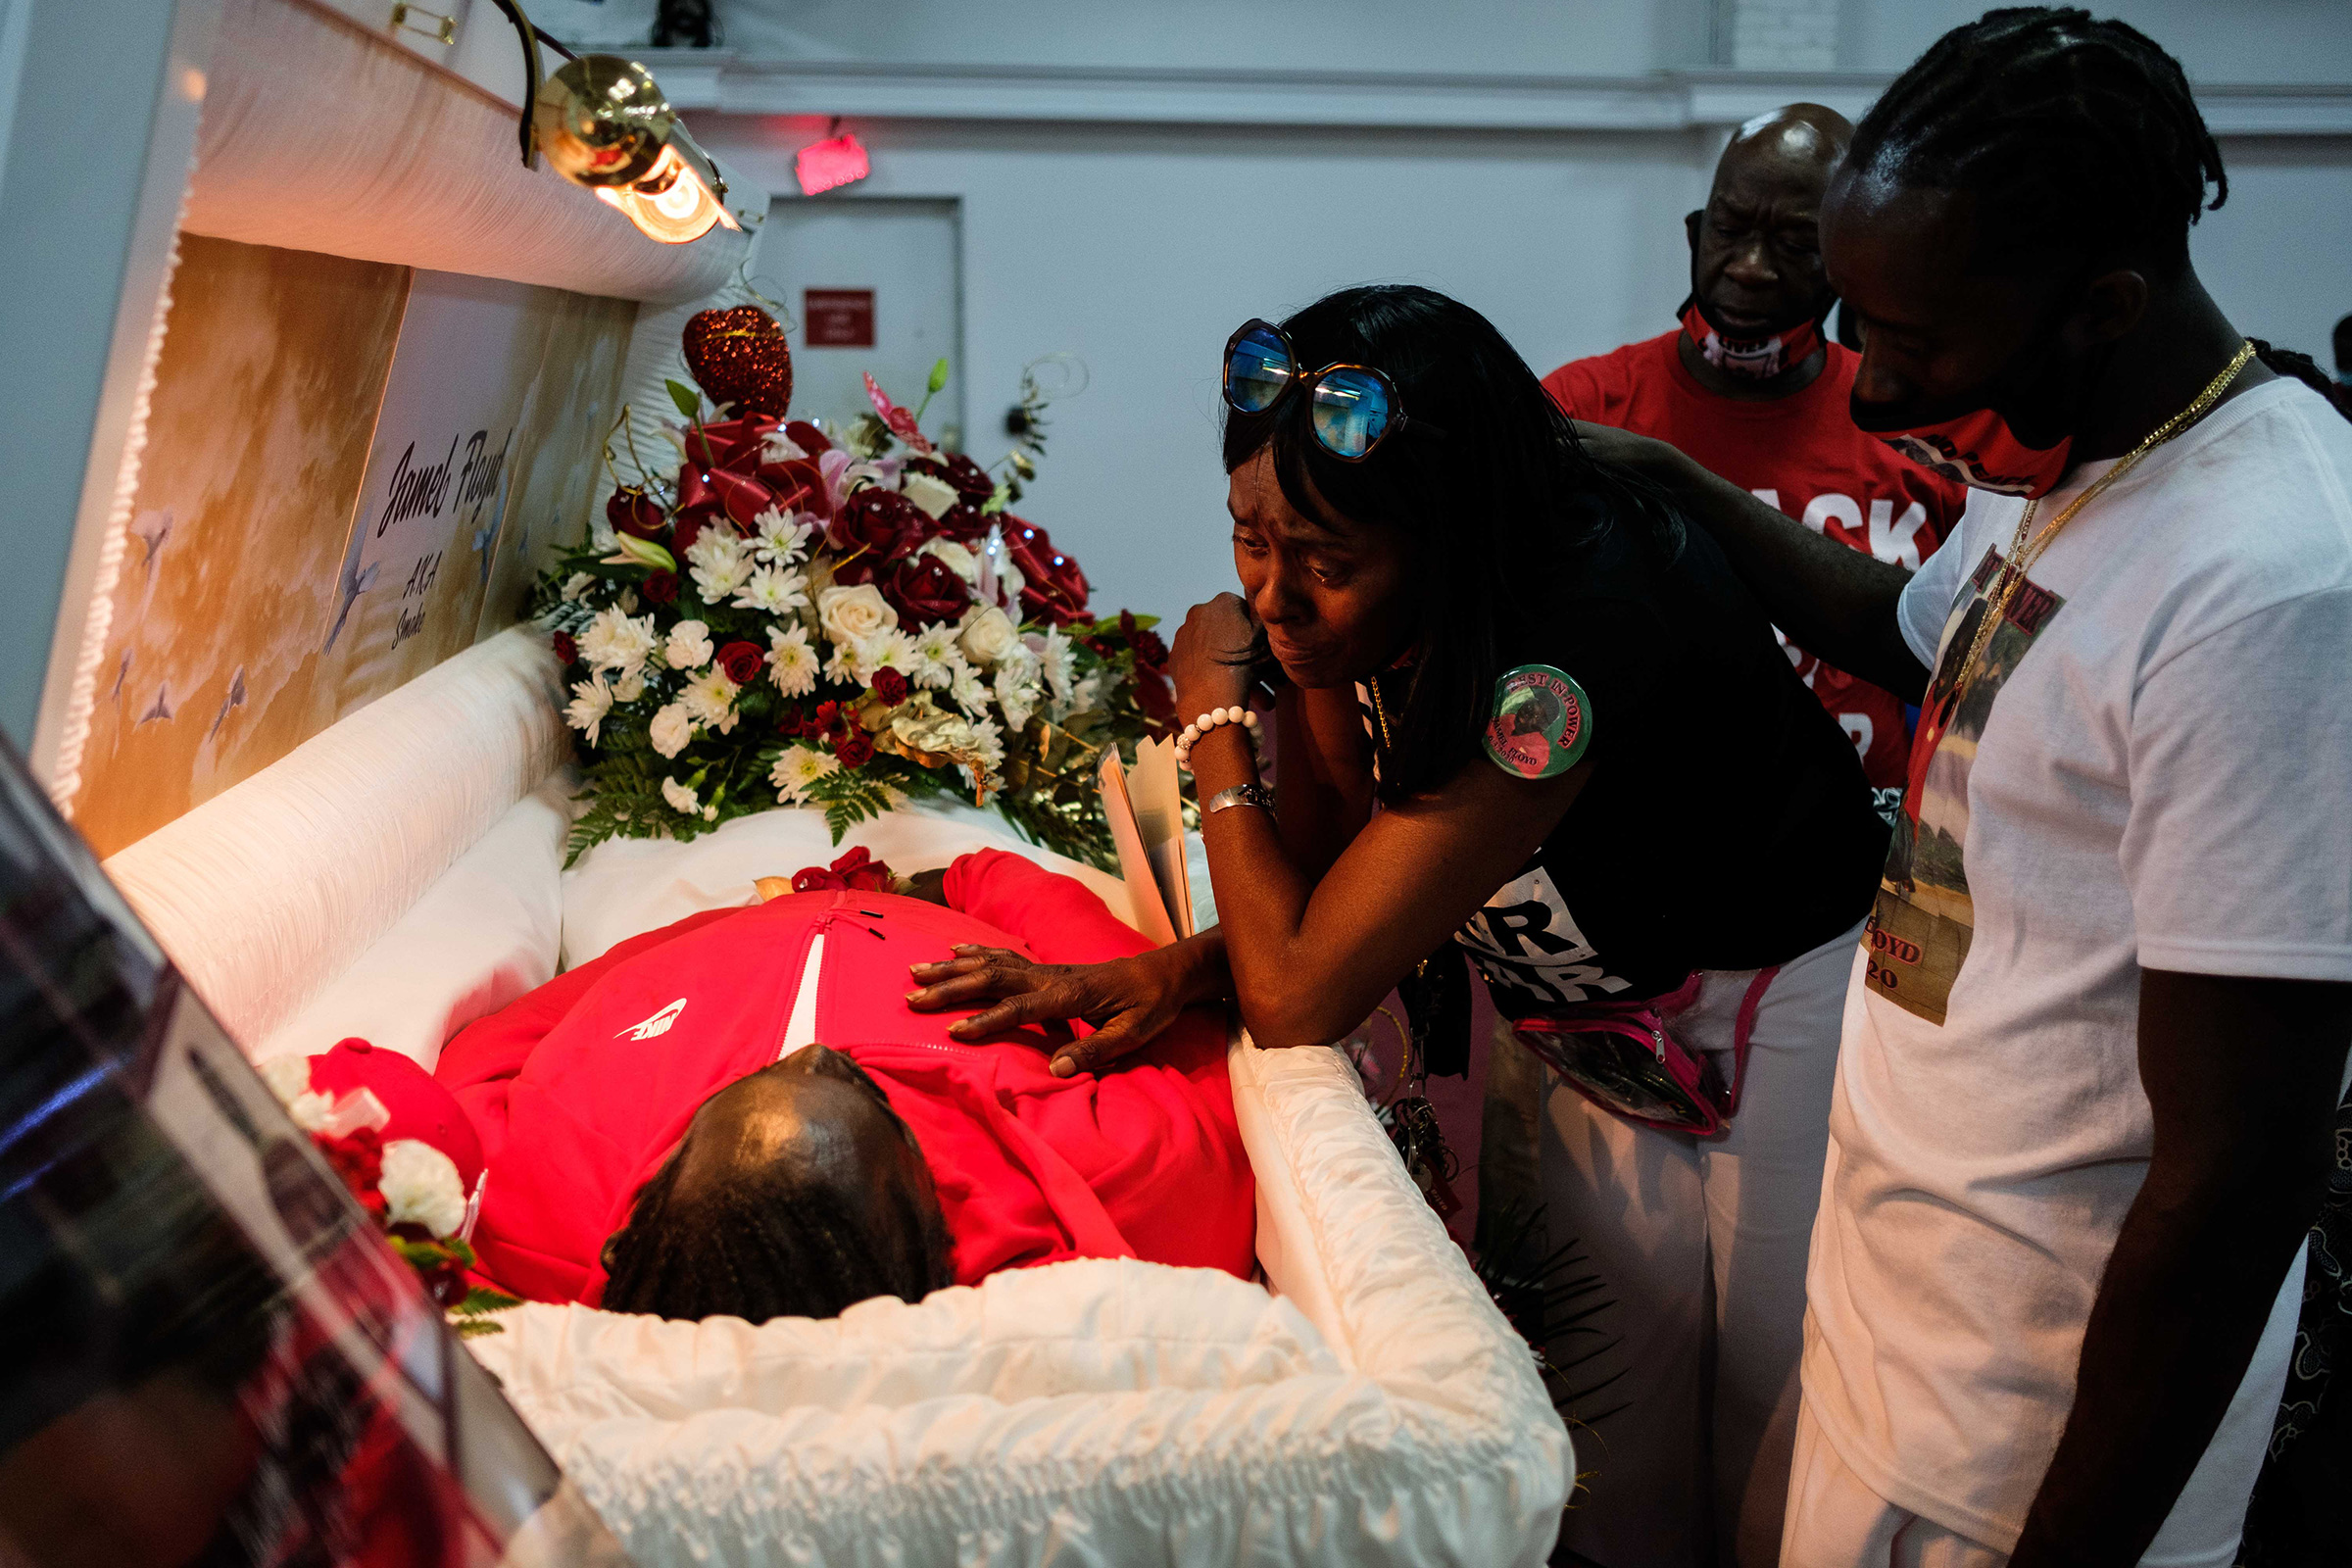 Donna Mays, Jamel Floyd's mother, looks down at her son's body during the wake at Judea United Baptist Church in Hempstead, N.Y., on June 29.